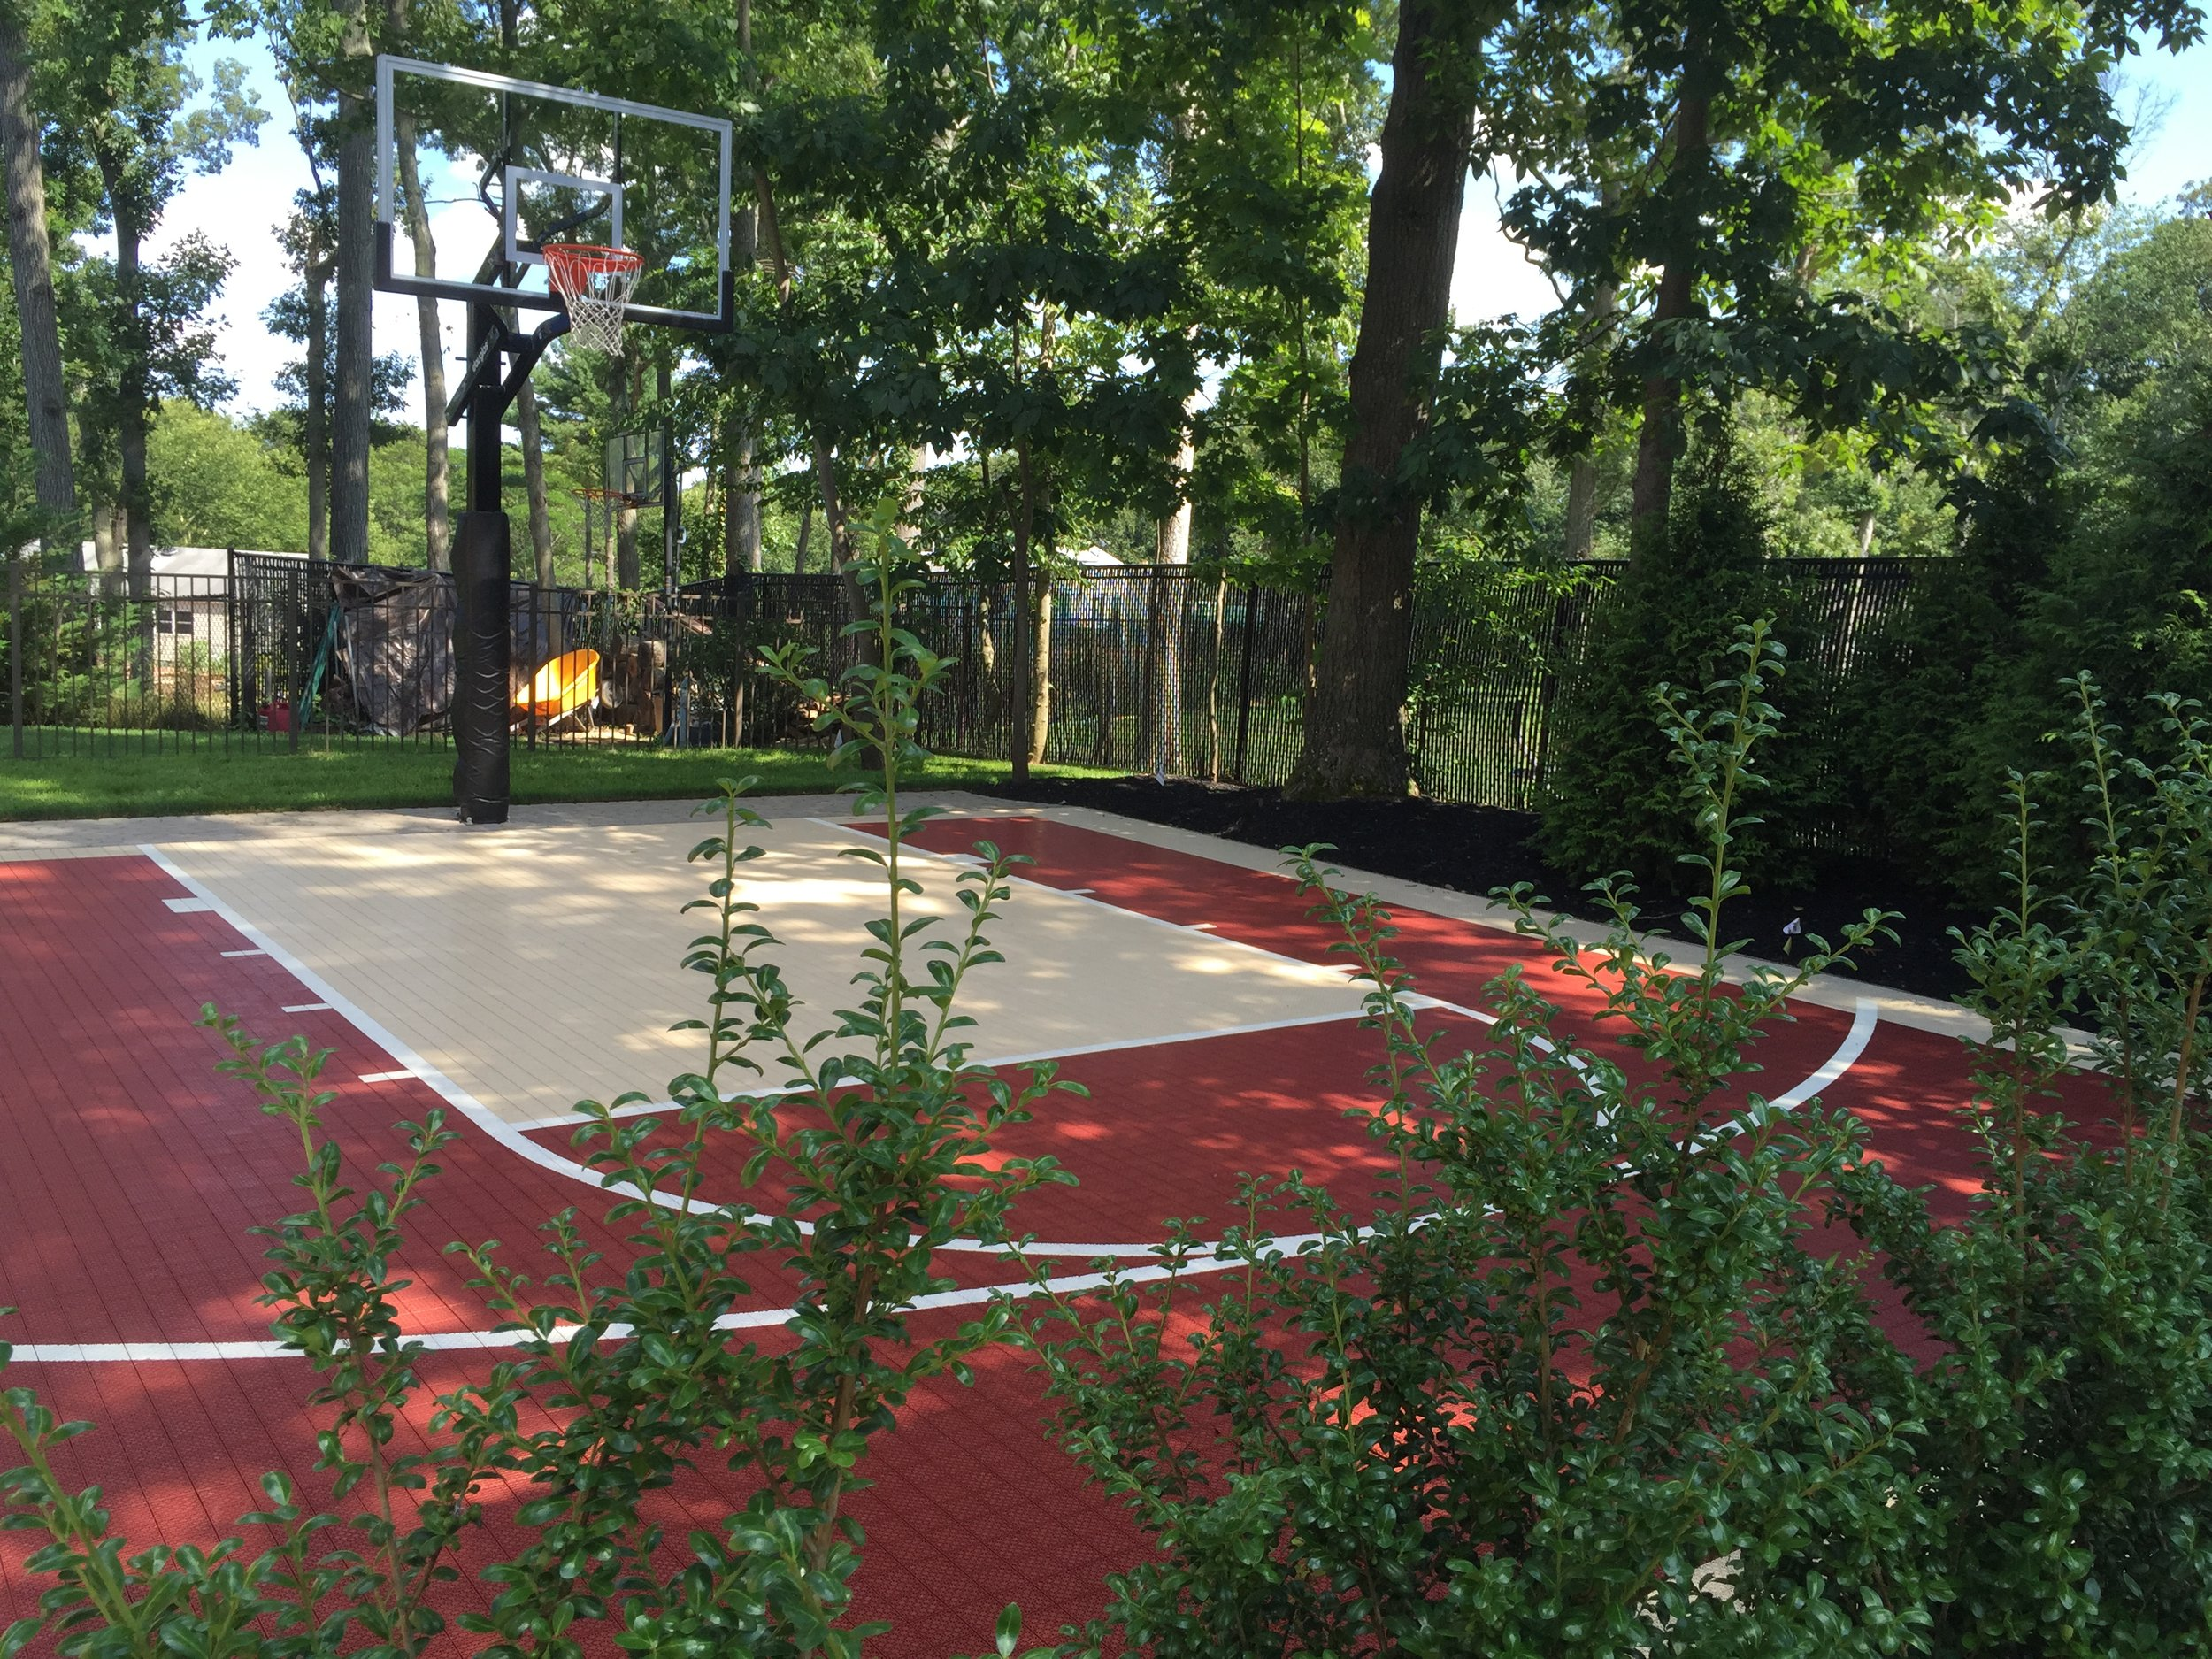 Experienced basketball court landscape design in Long Island, NY